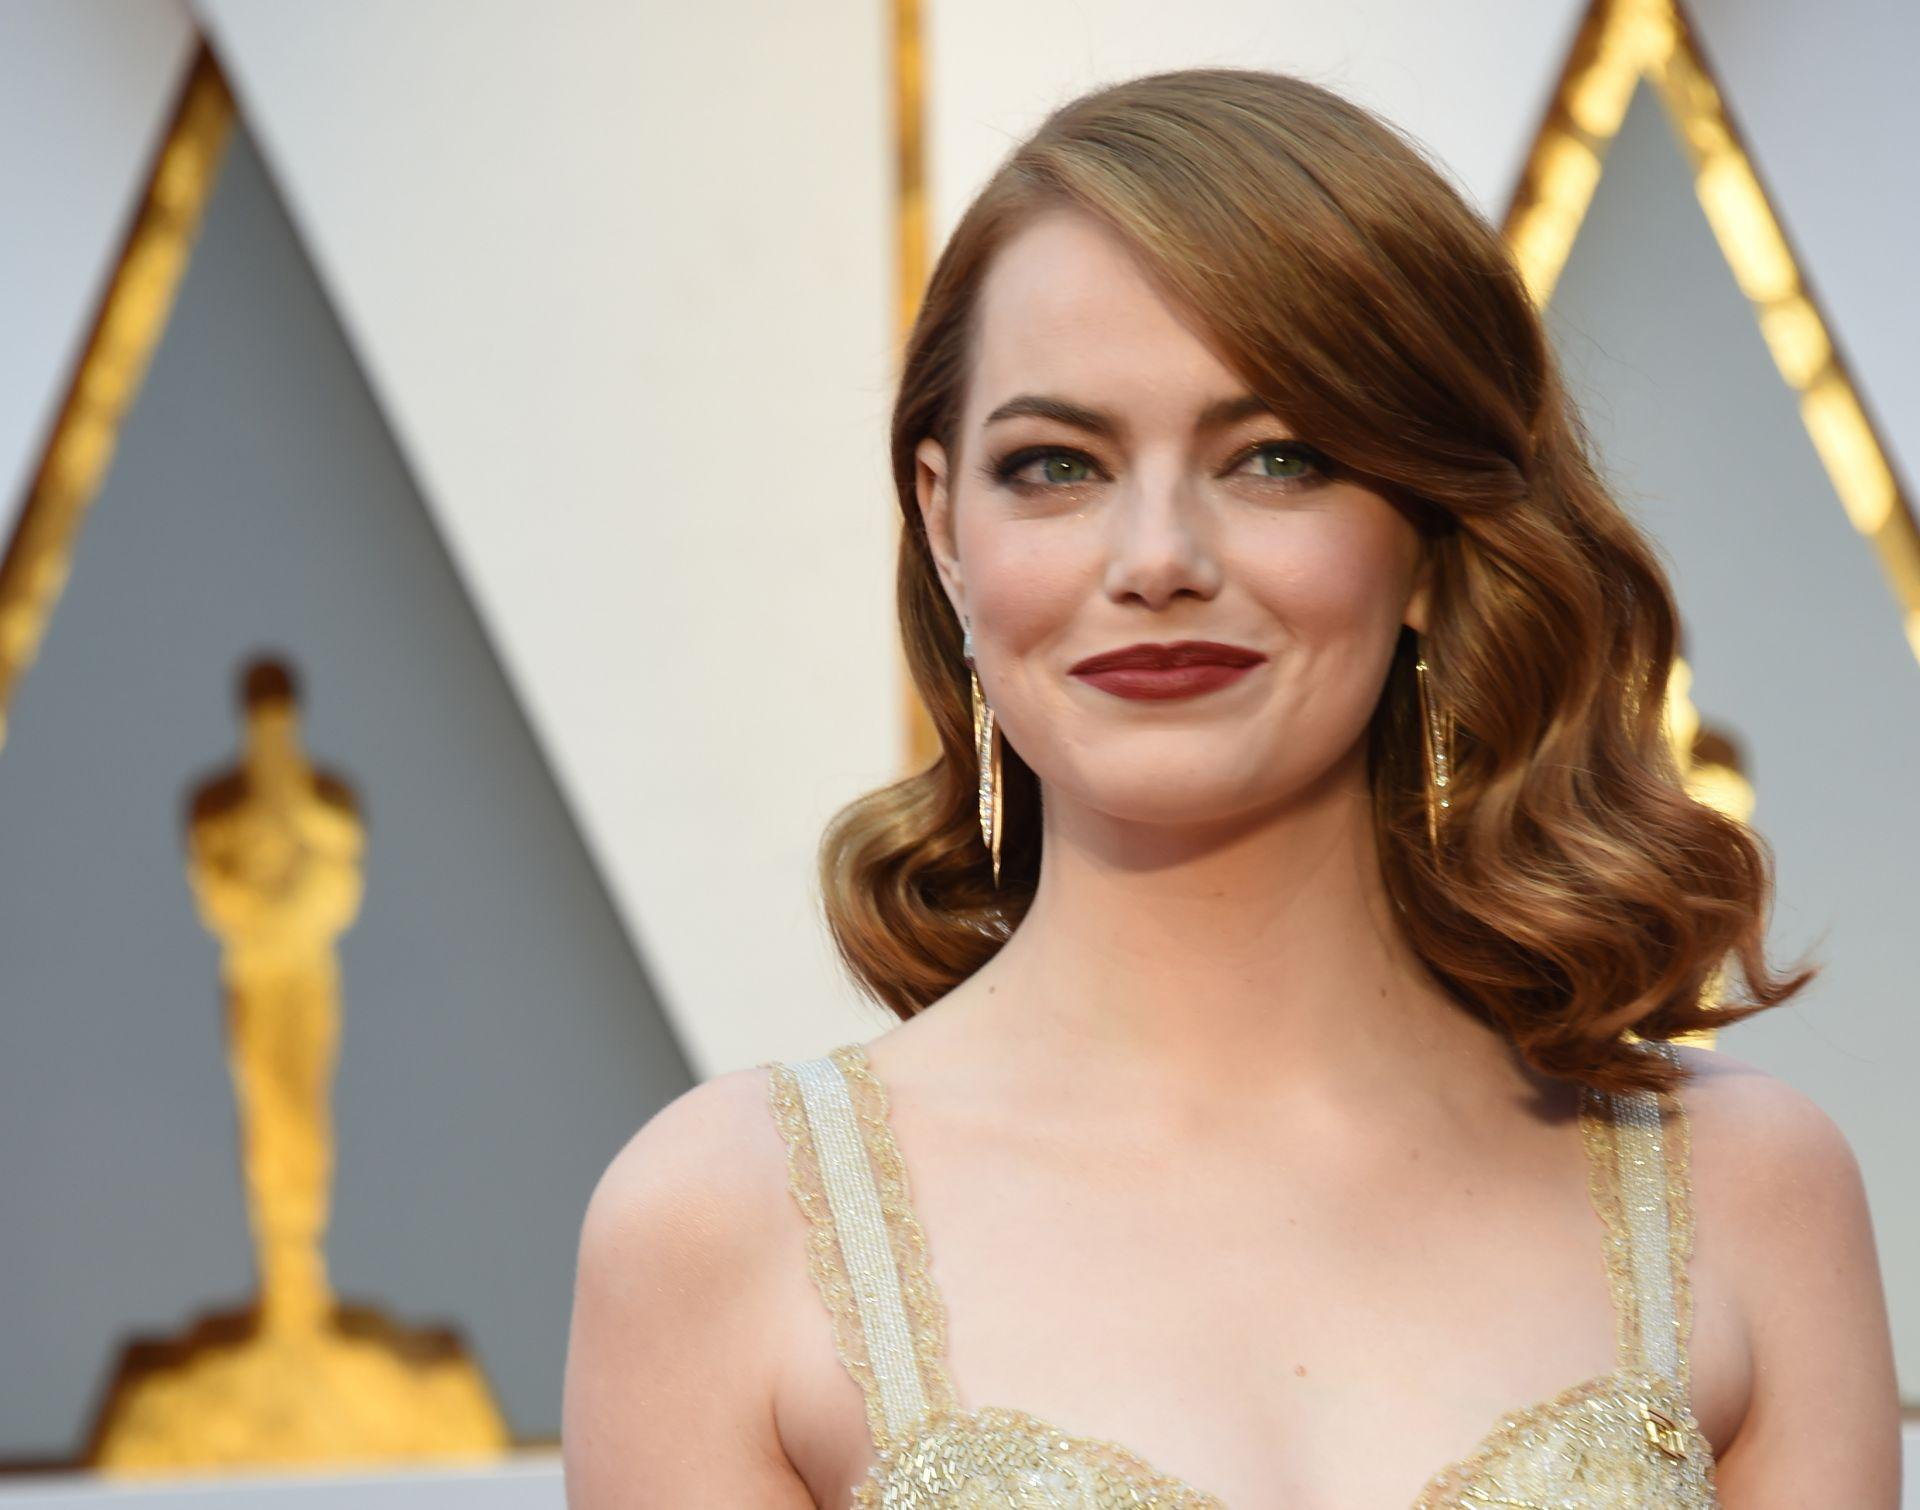 NARS Emma-Stone-Oscars-Valerie Macon-GettyImages-645650462_022617